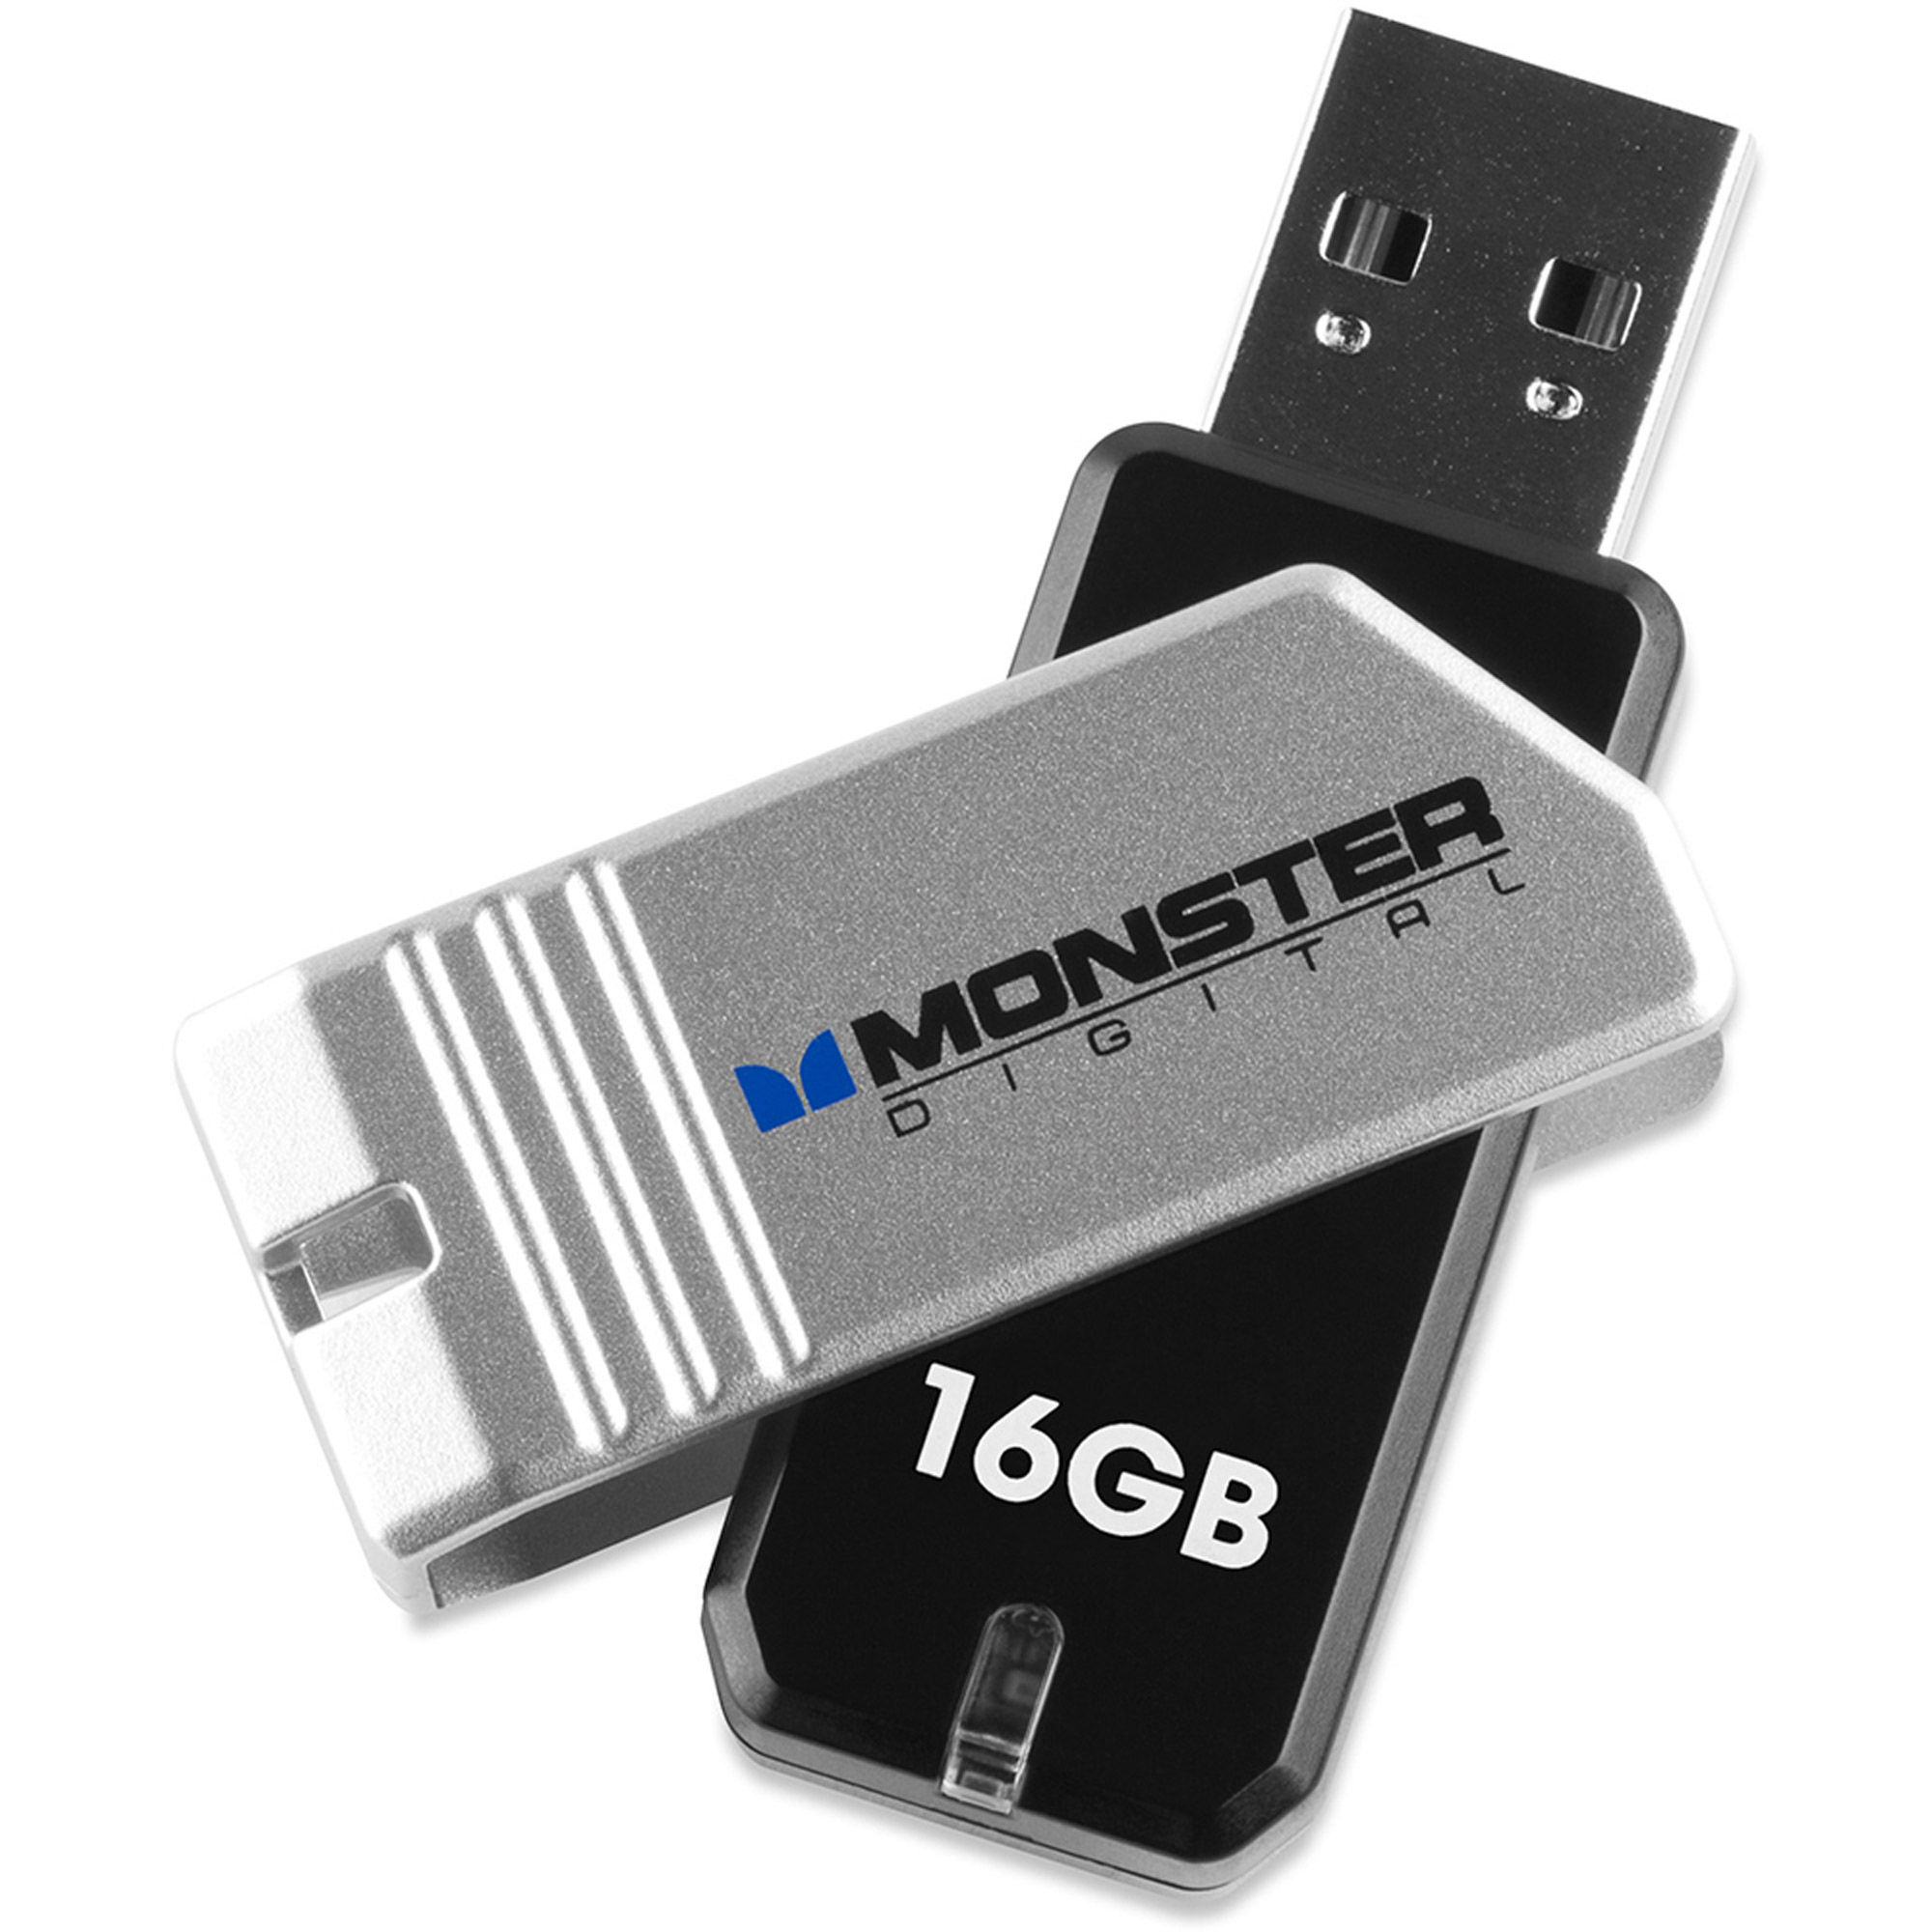 Monster Digital USBCO-0016-A USB 2.0 High Speed Flash Drive with Twist Cap COPPA 2.0 Series